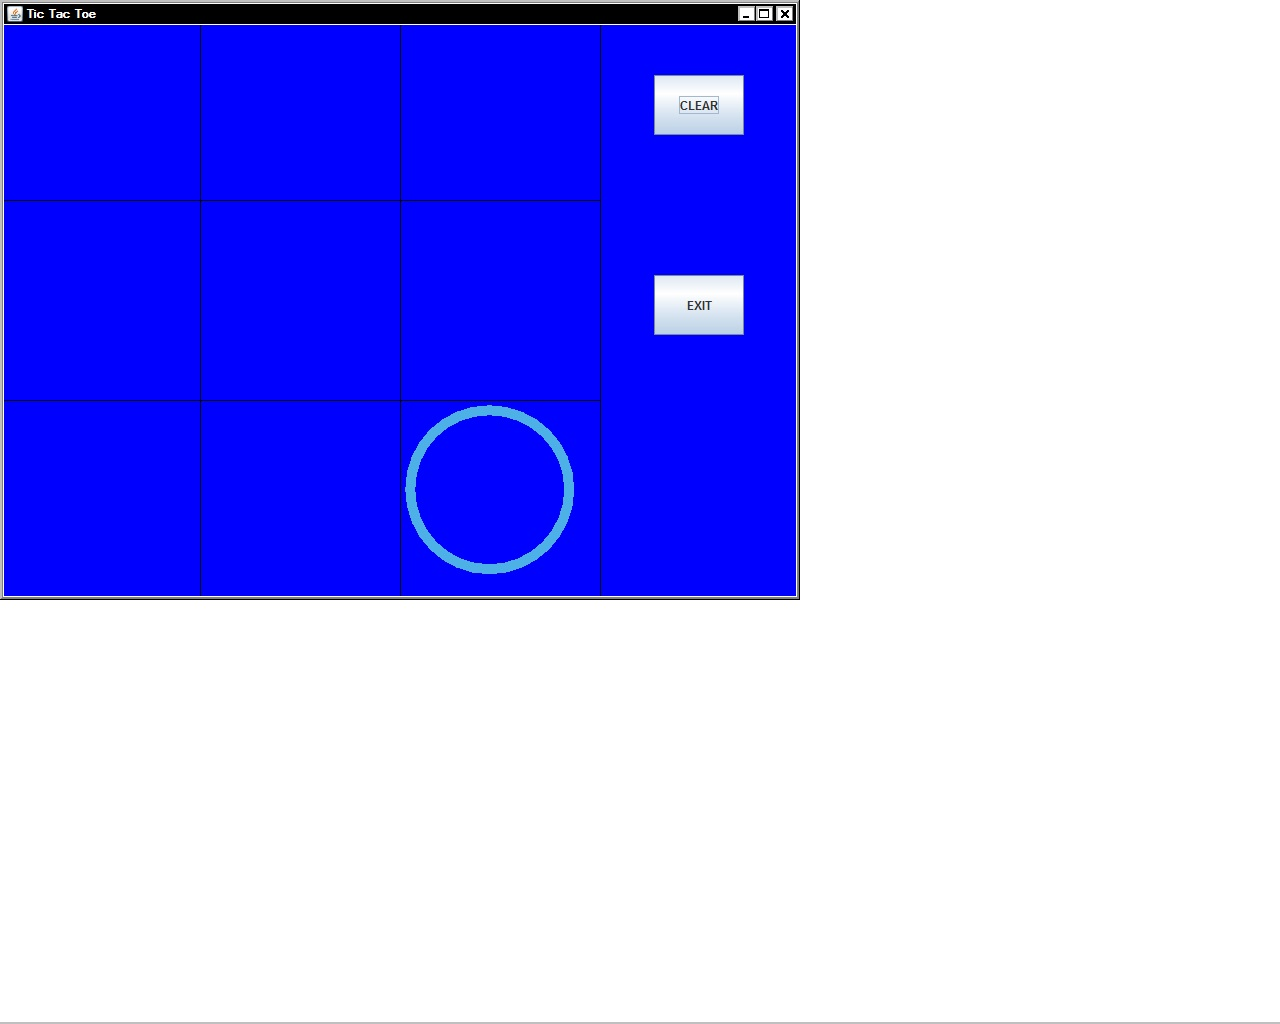 tic tac toe game frame java code output image